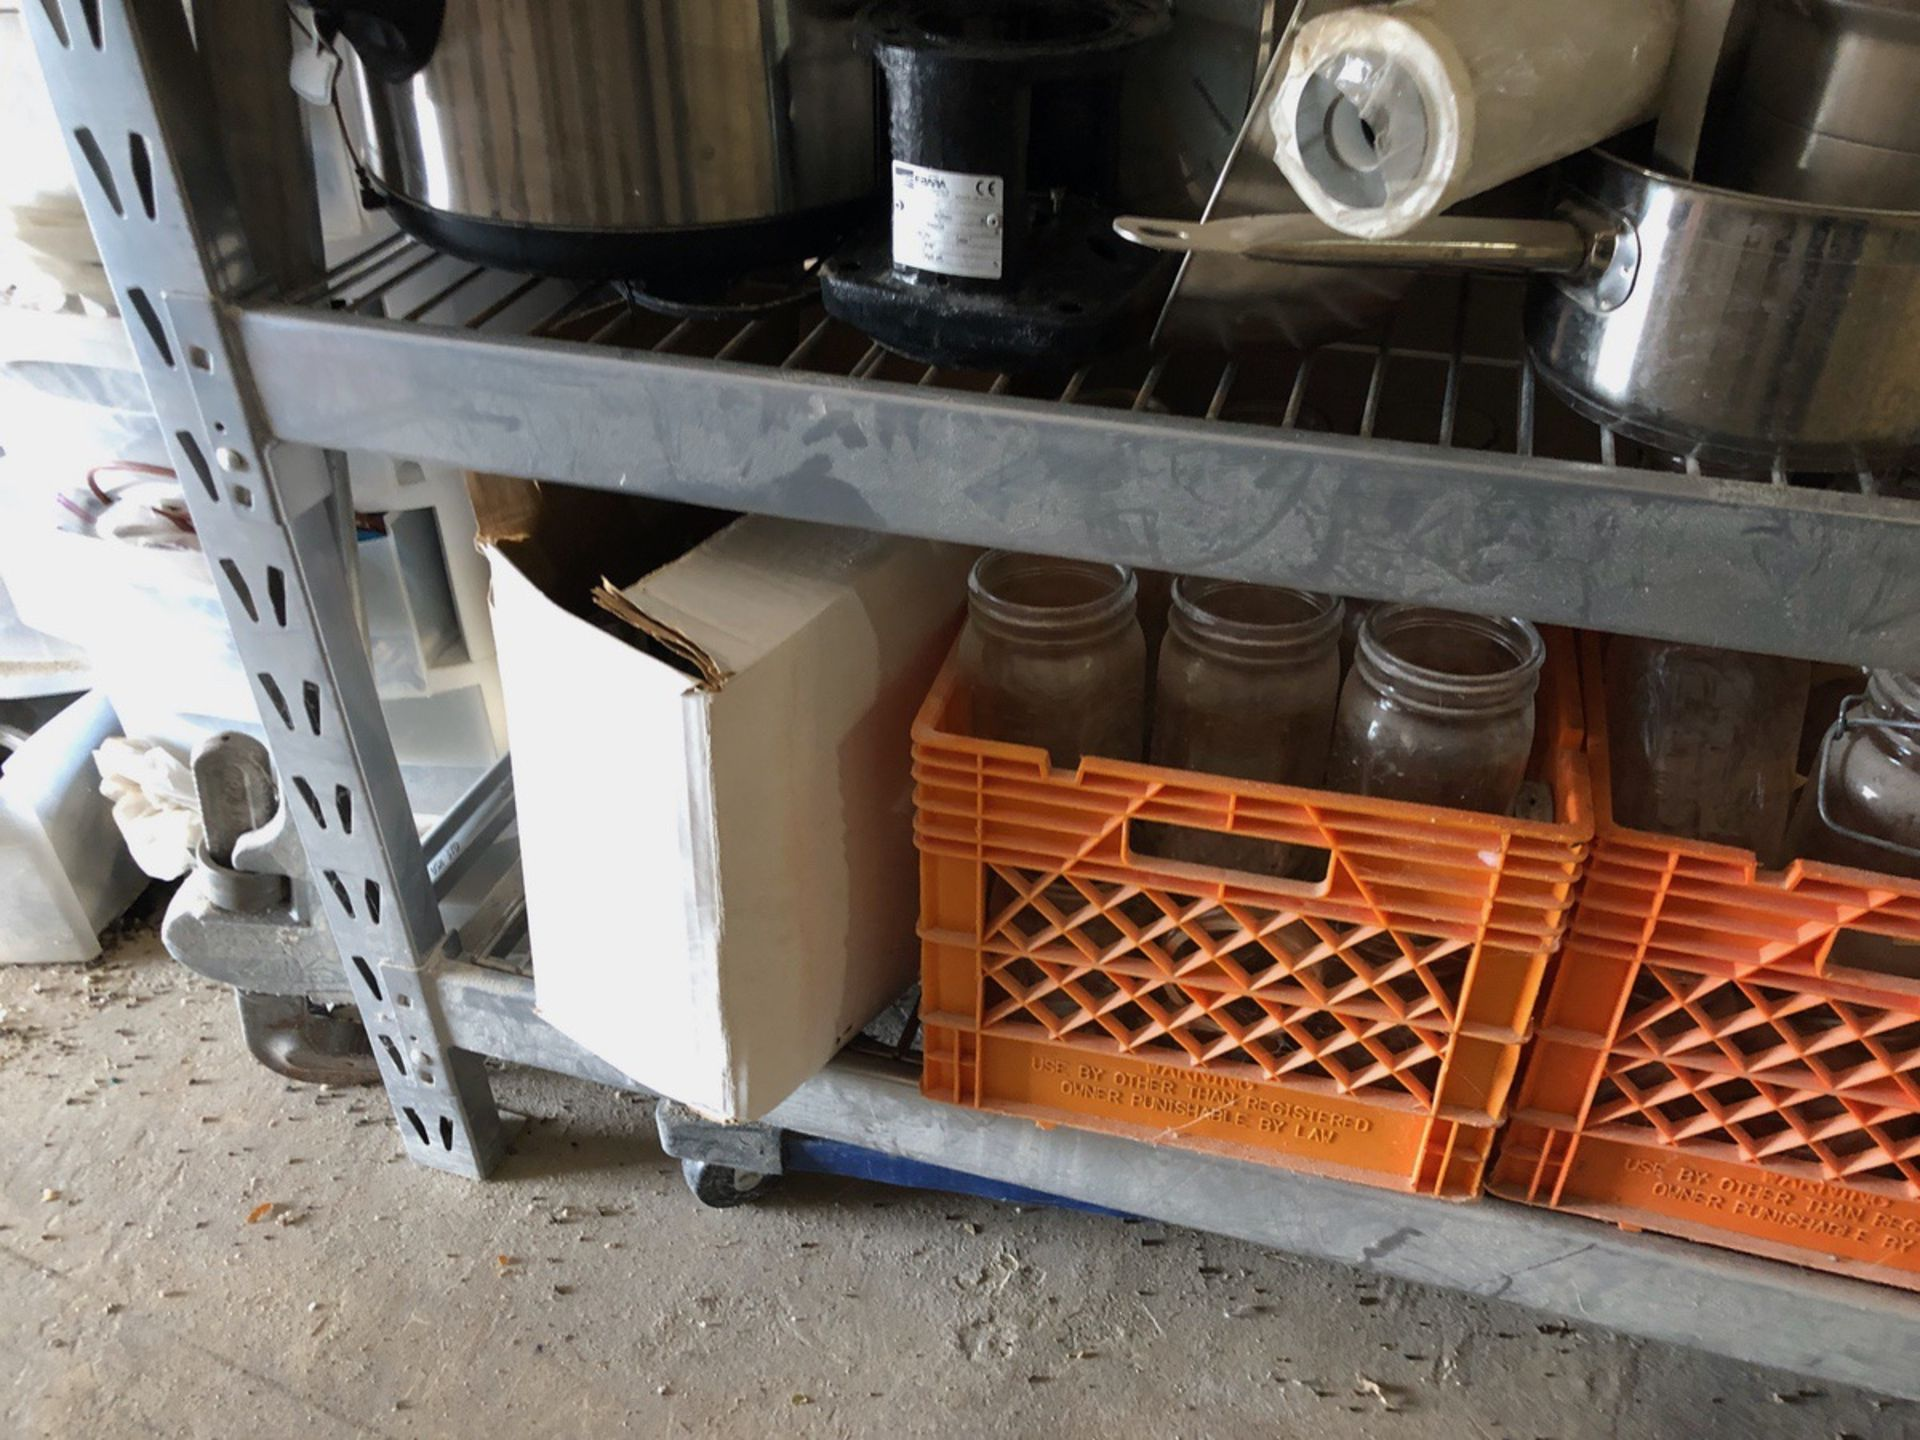 Lot 80 - Rack and Contents | Rig Fee: $150